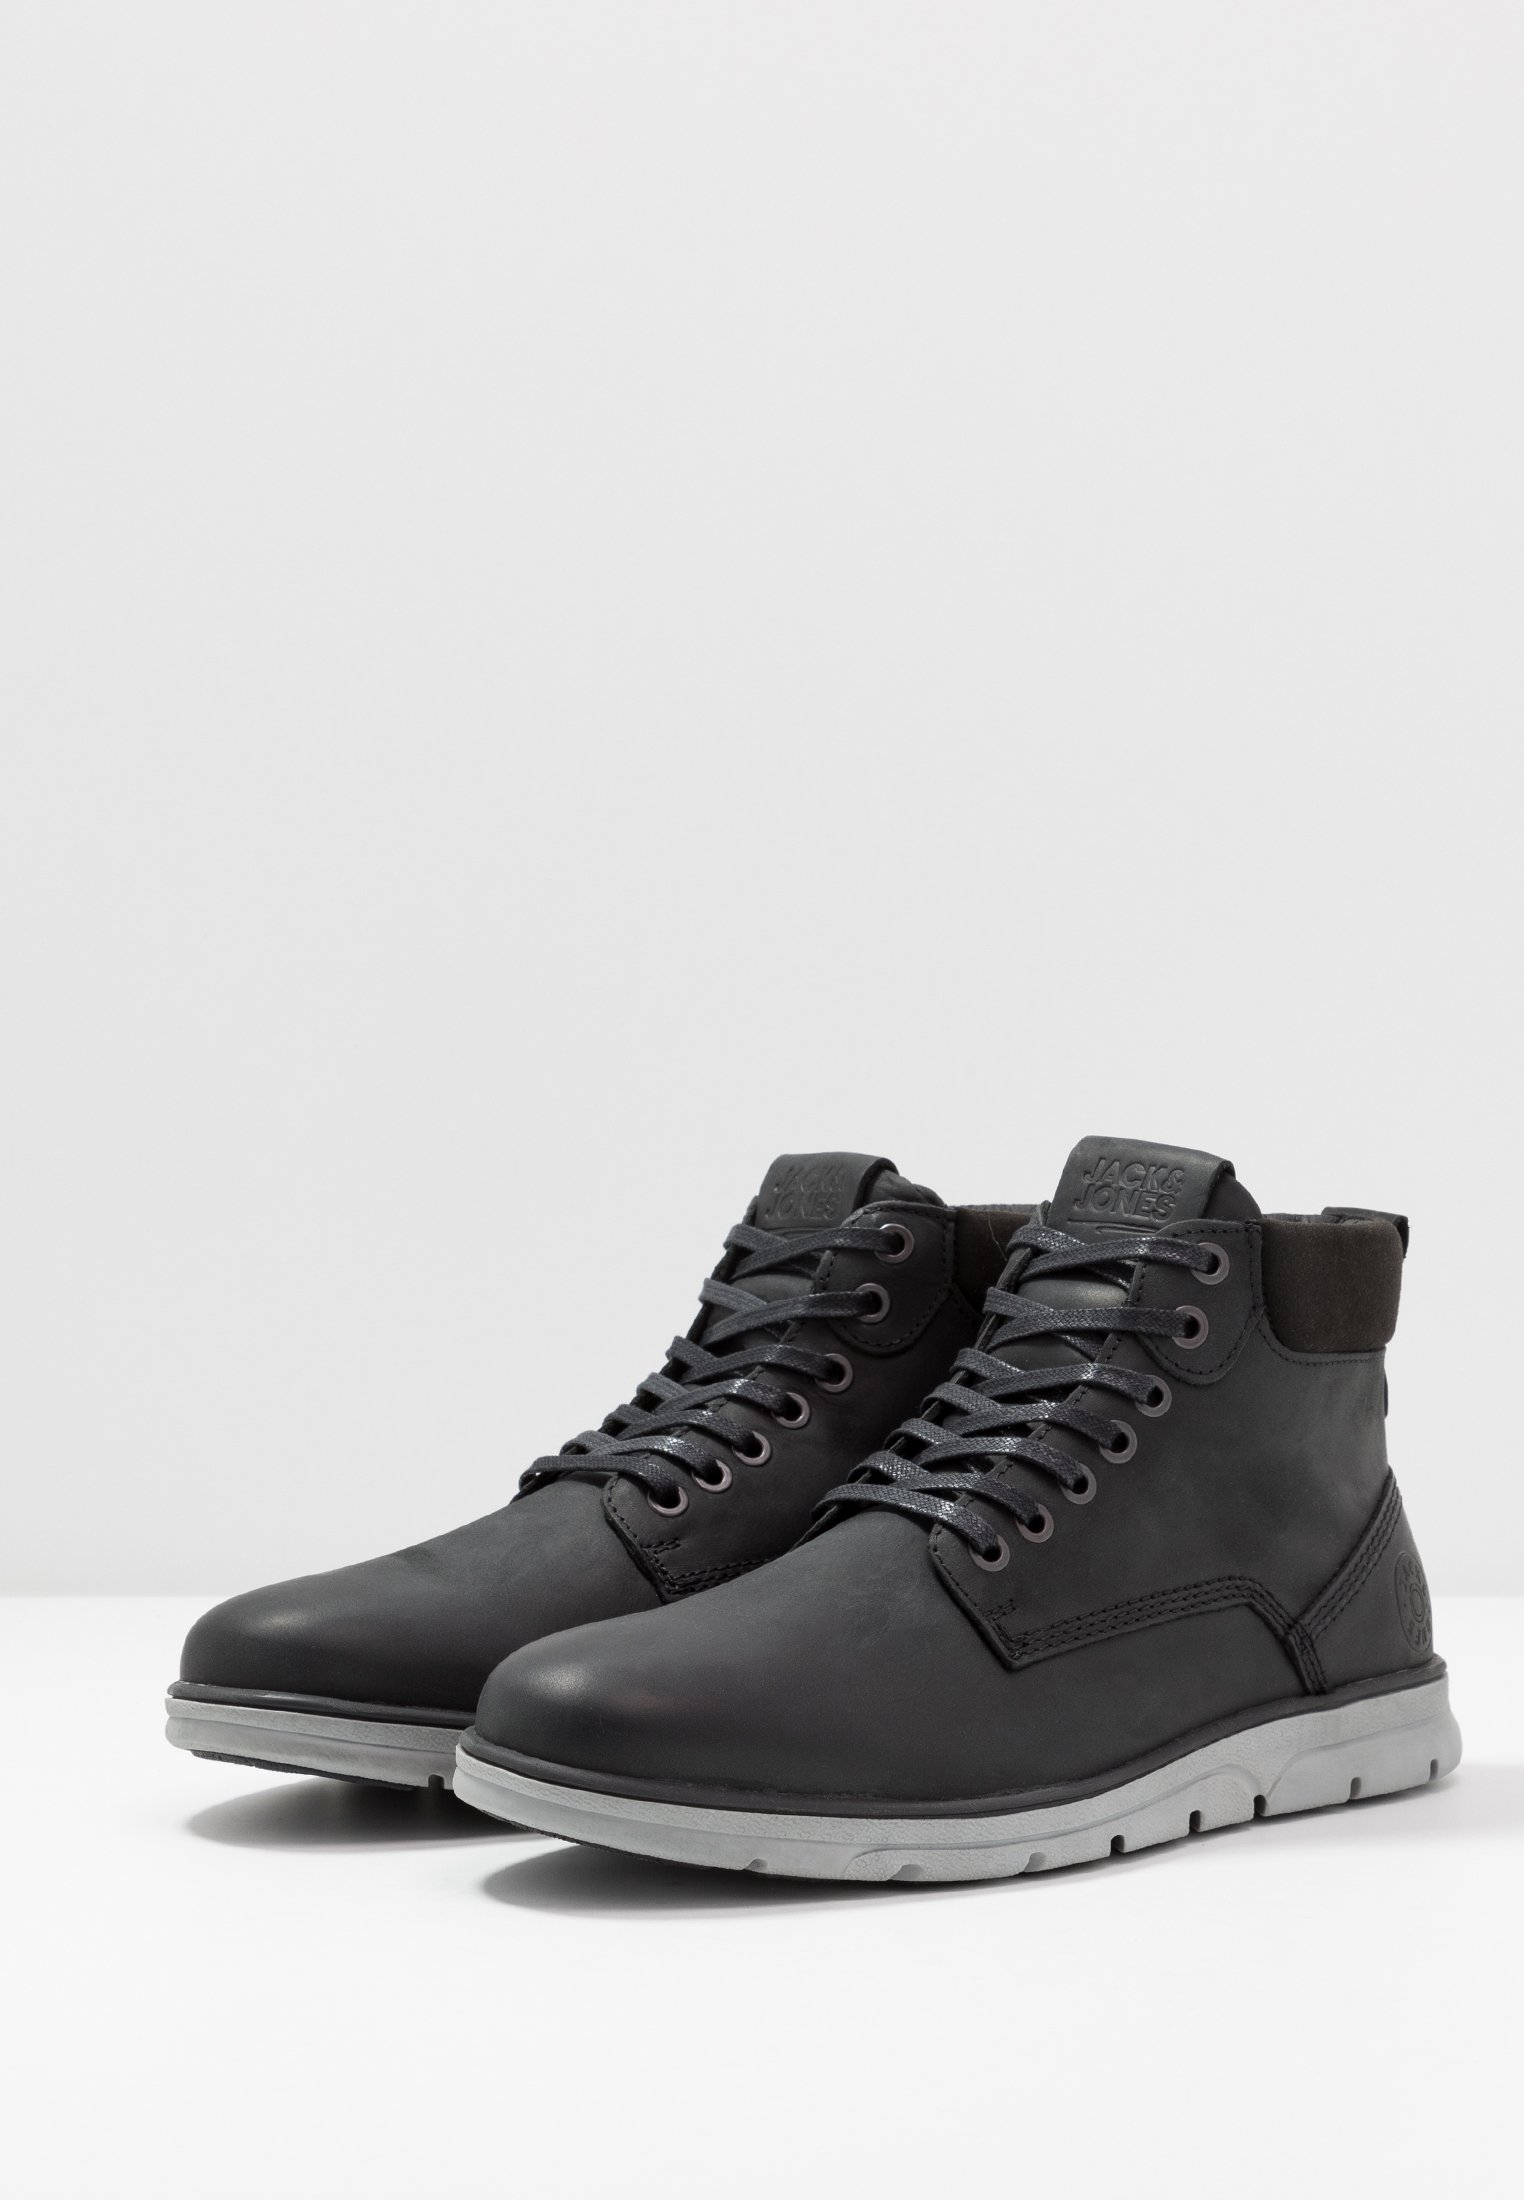 2013 Cheapest Jack & Jones JFWTUBAR - Lace-up ankle boots - anthracite | men's shoes 2020 9OZZO